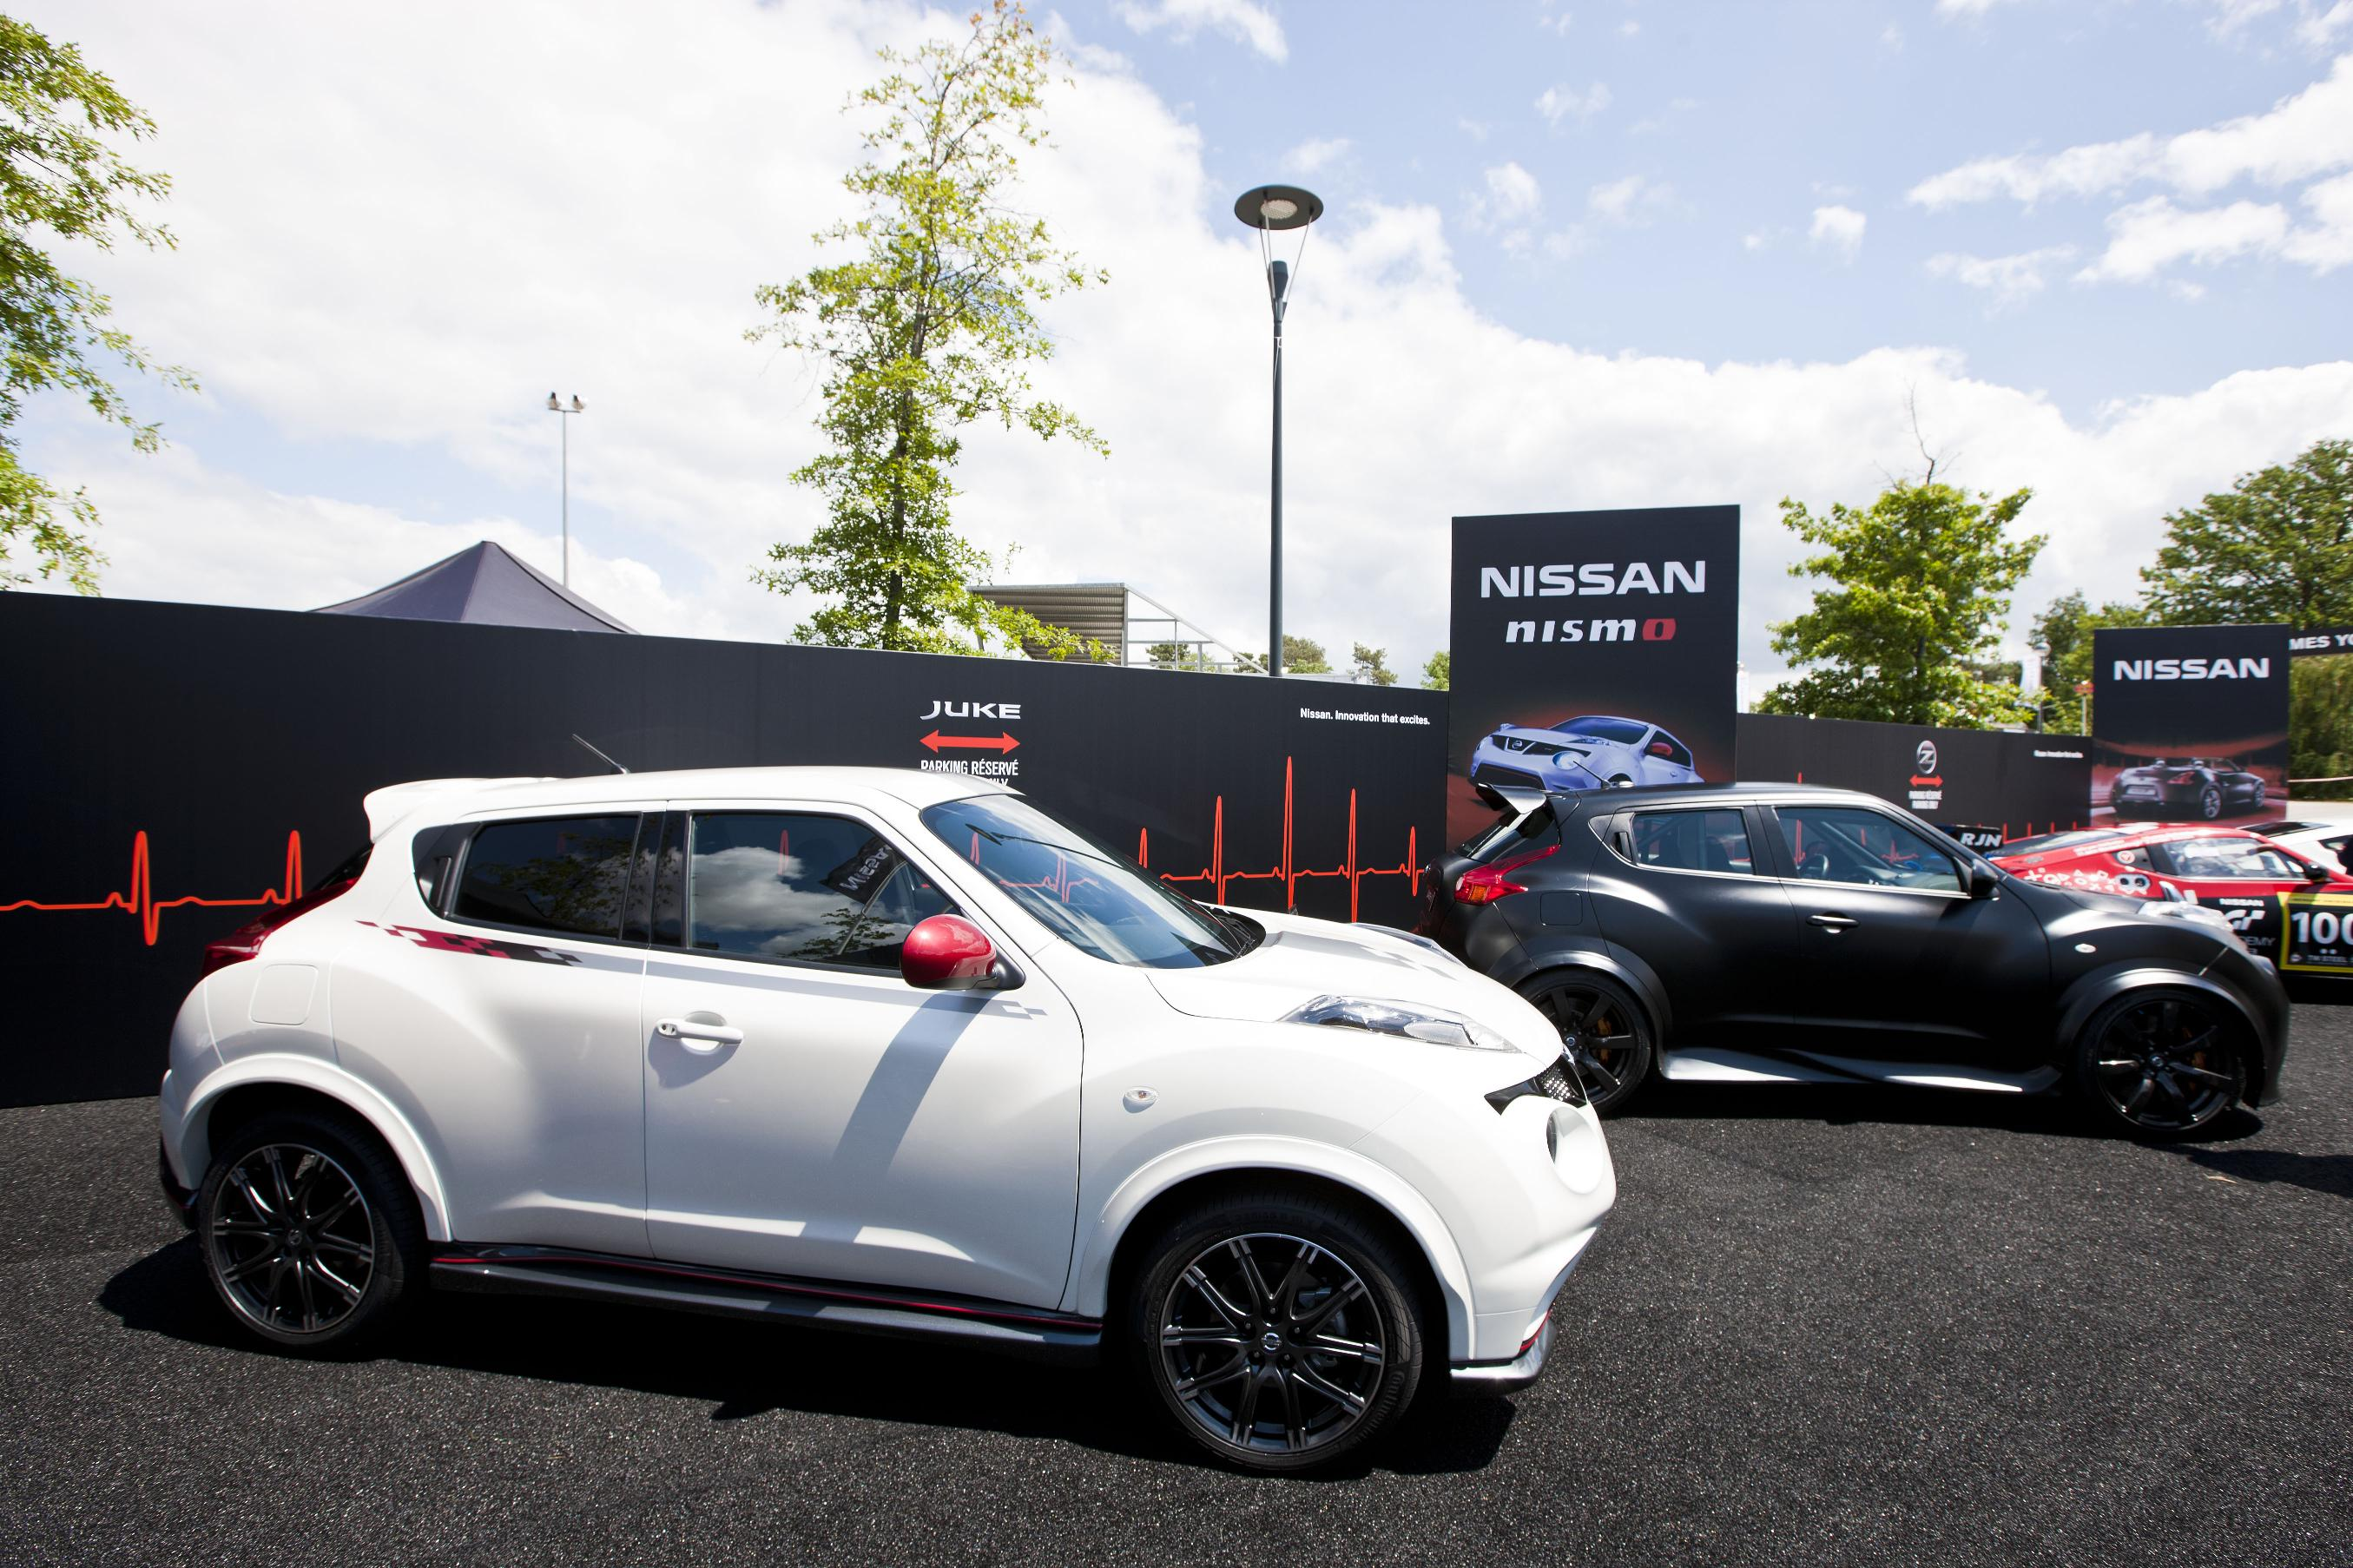 juke news used awd jukes review autoguide nissan manufacturer nismo com rs